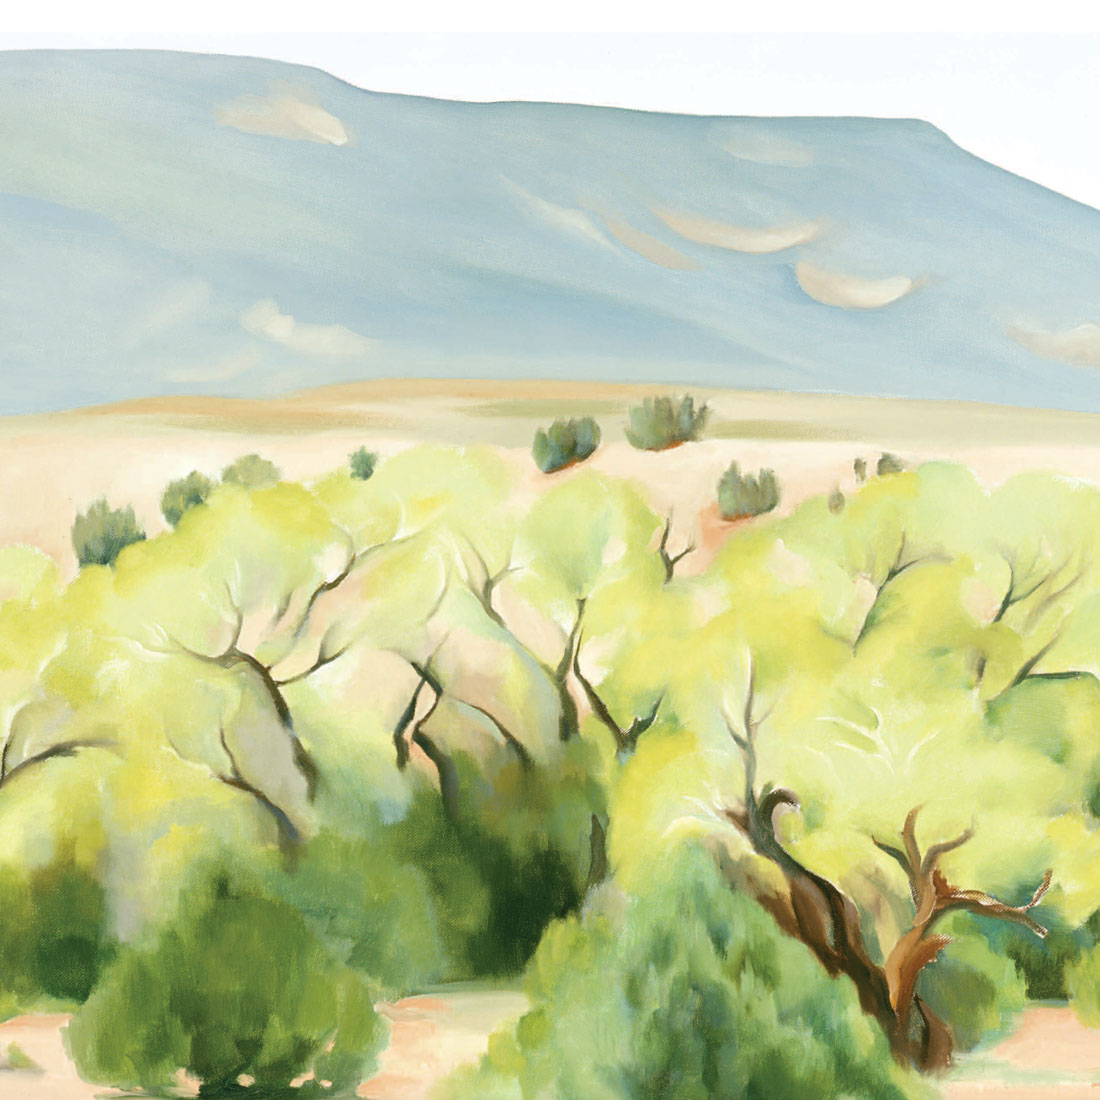 abstract desert bushes